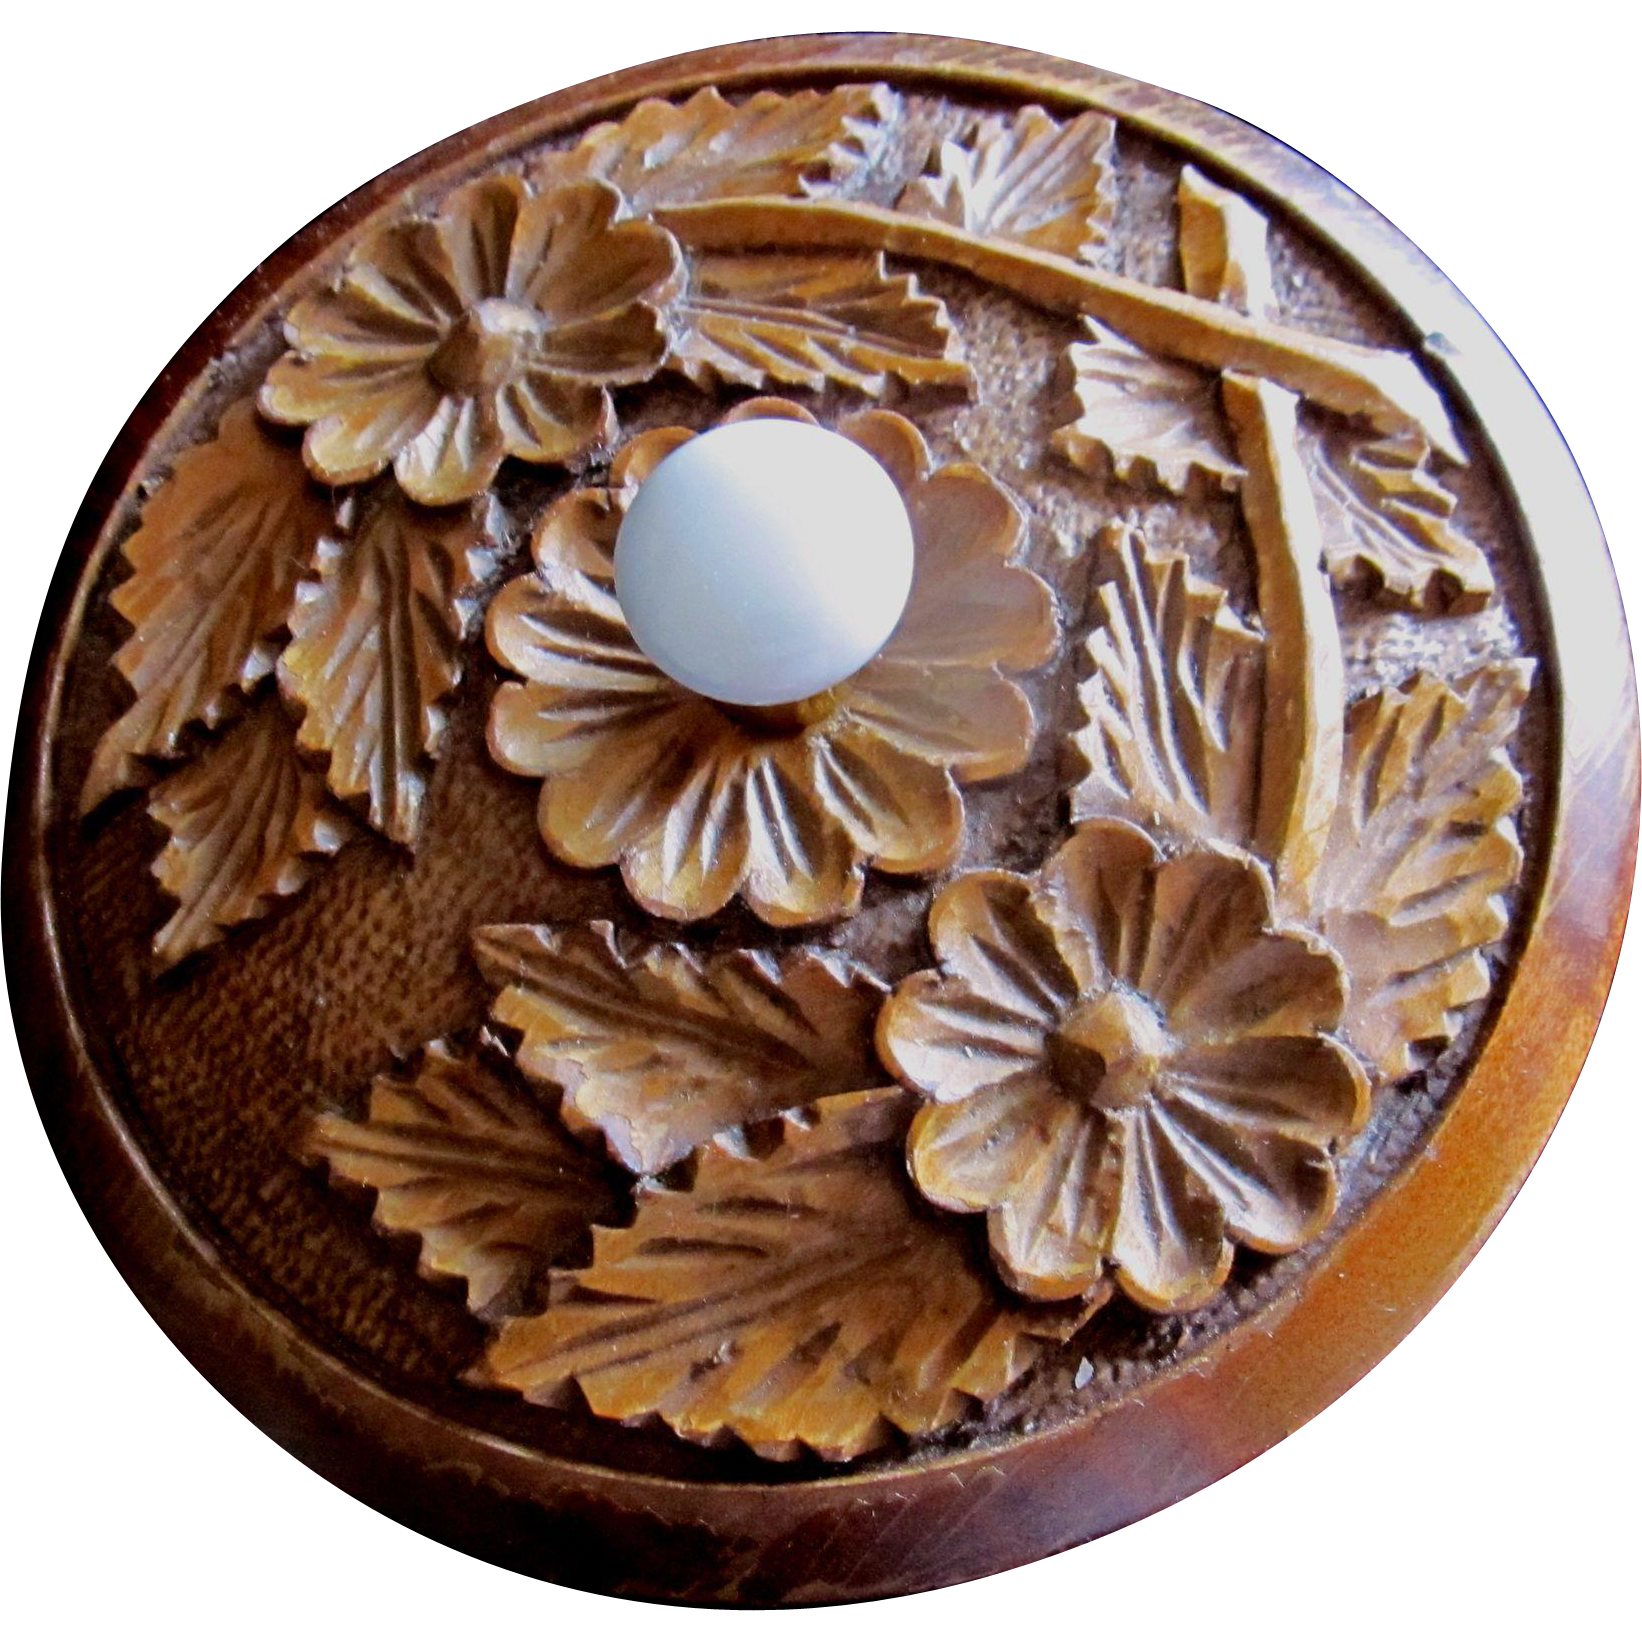 Vintage 60s FRENCH Folk Art Box CARVED Turned Wood Porcelain Knob Flowers Super CHARMING!